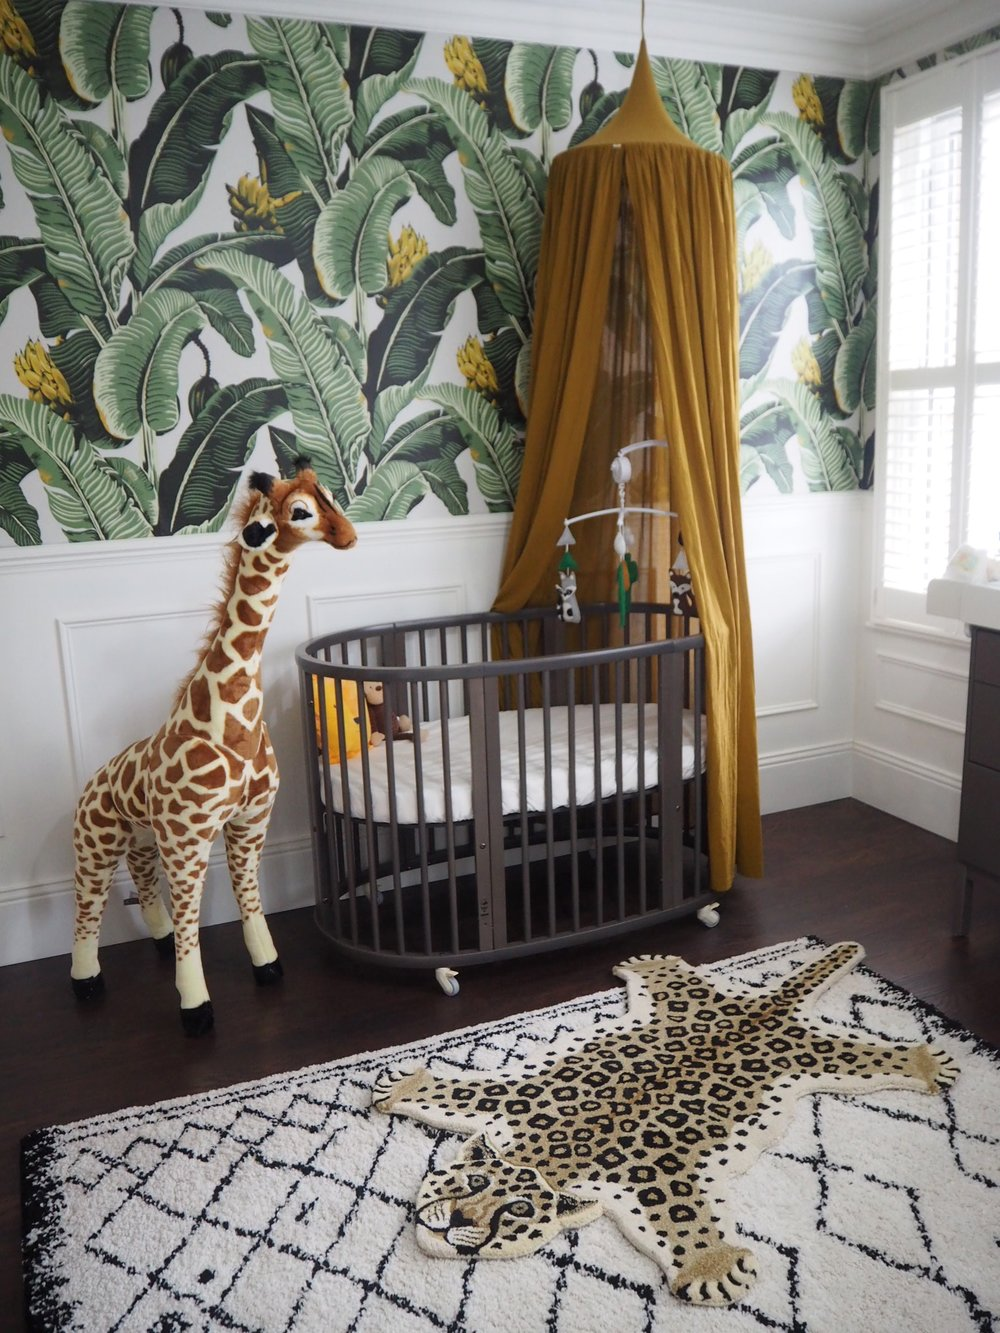 Leopard rug is from   Cotswold trading £149.99